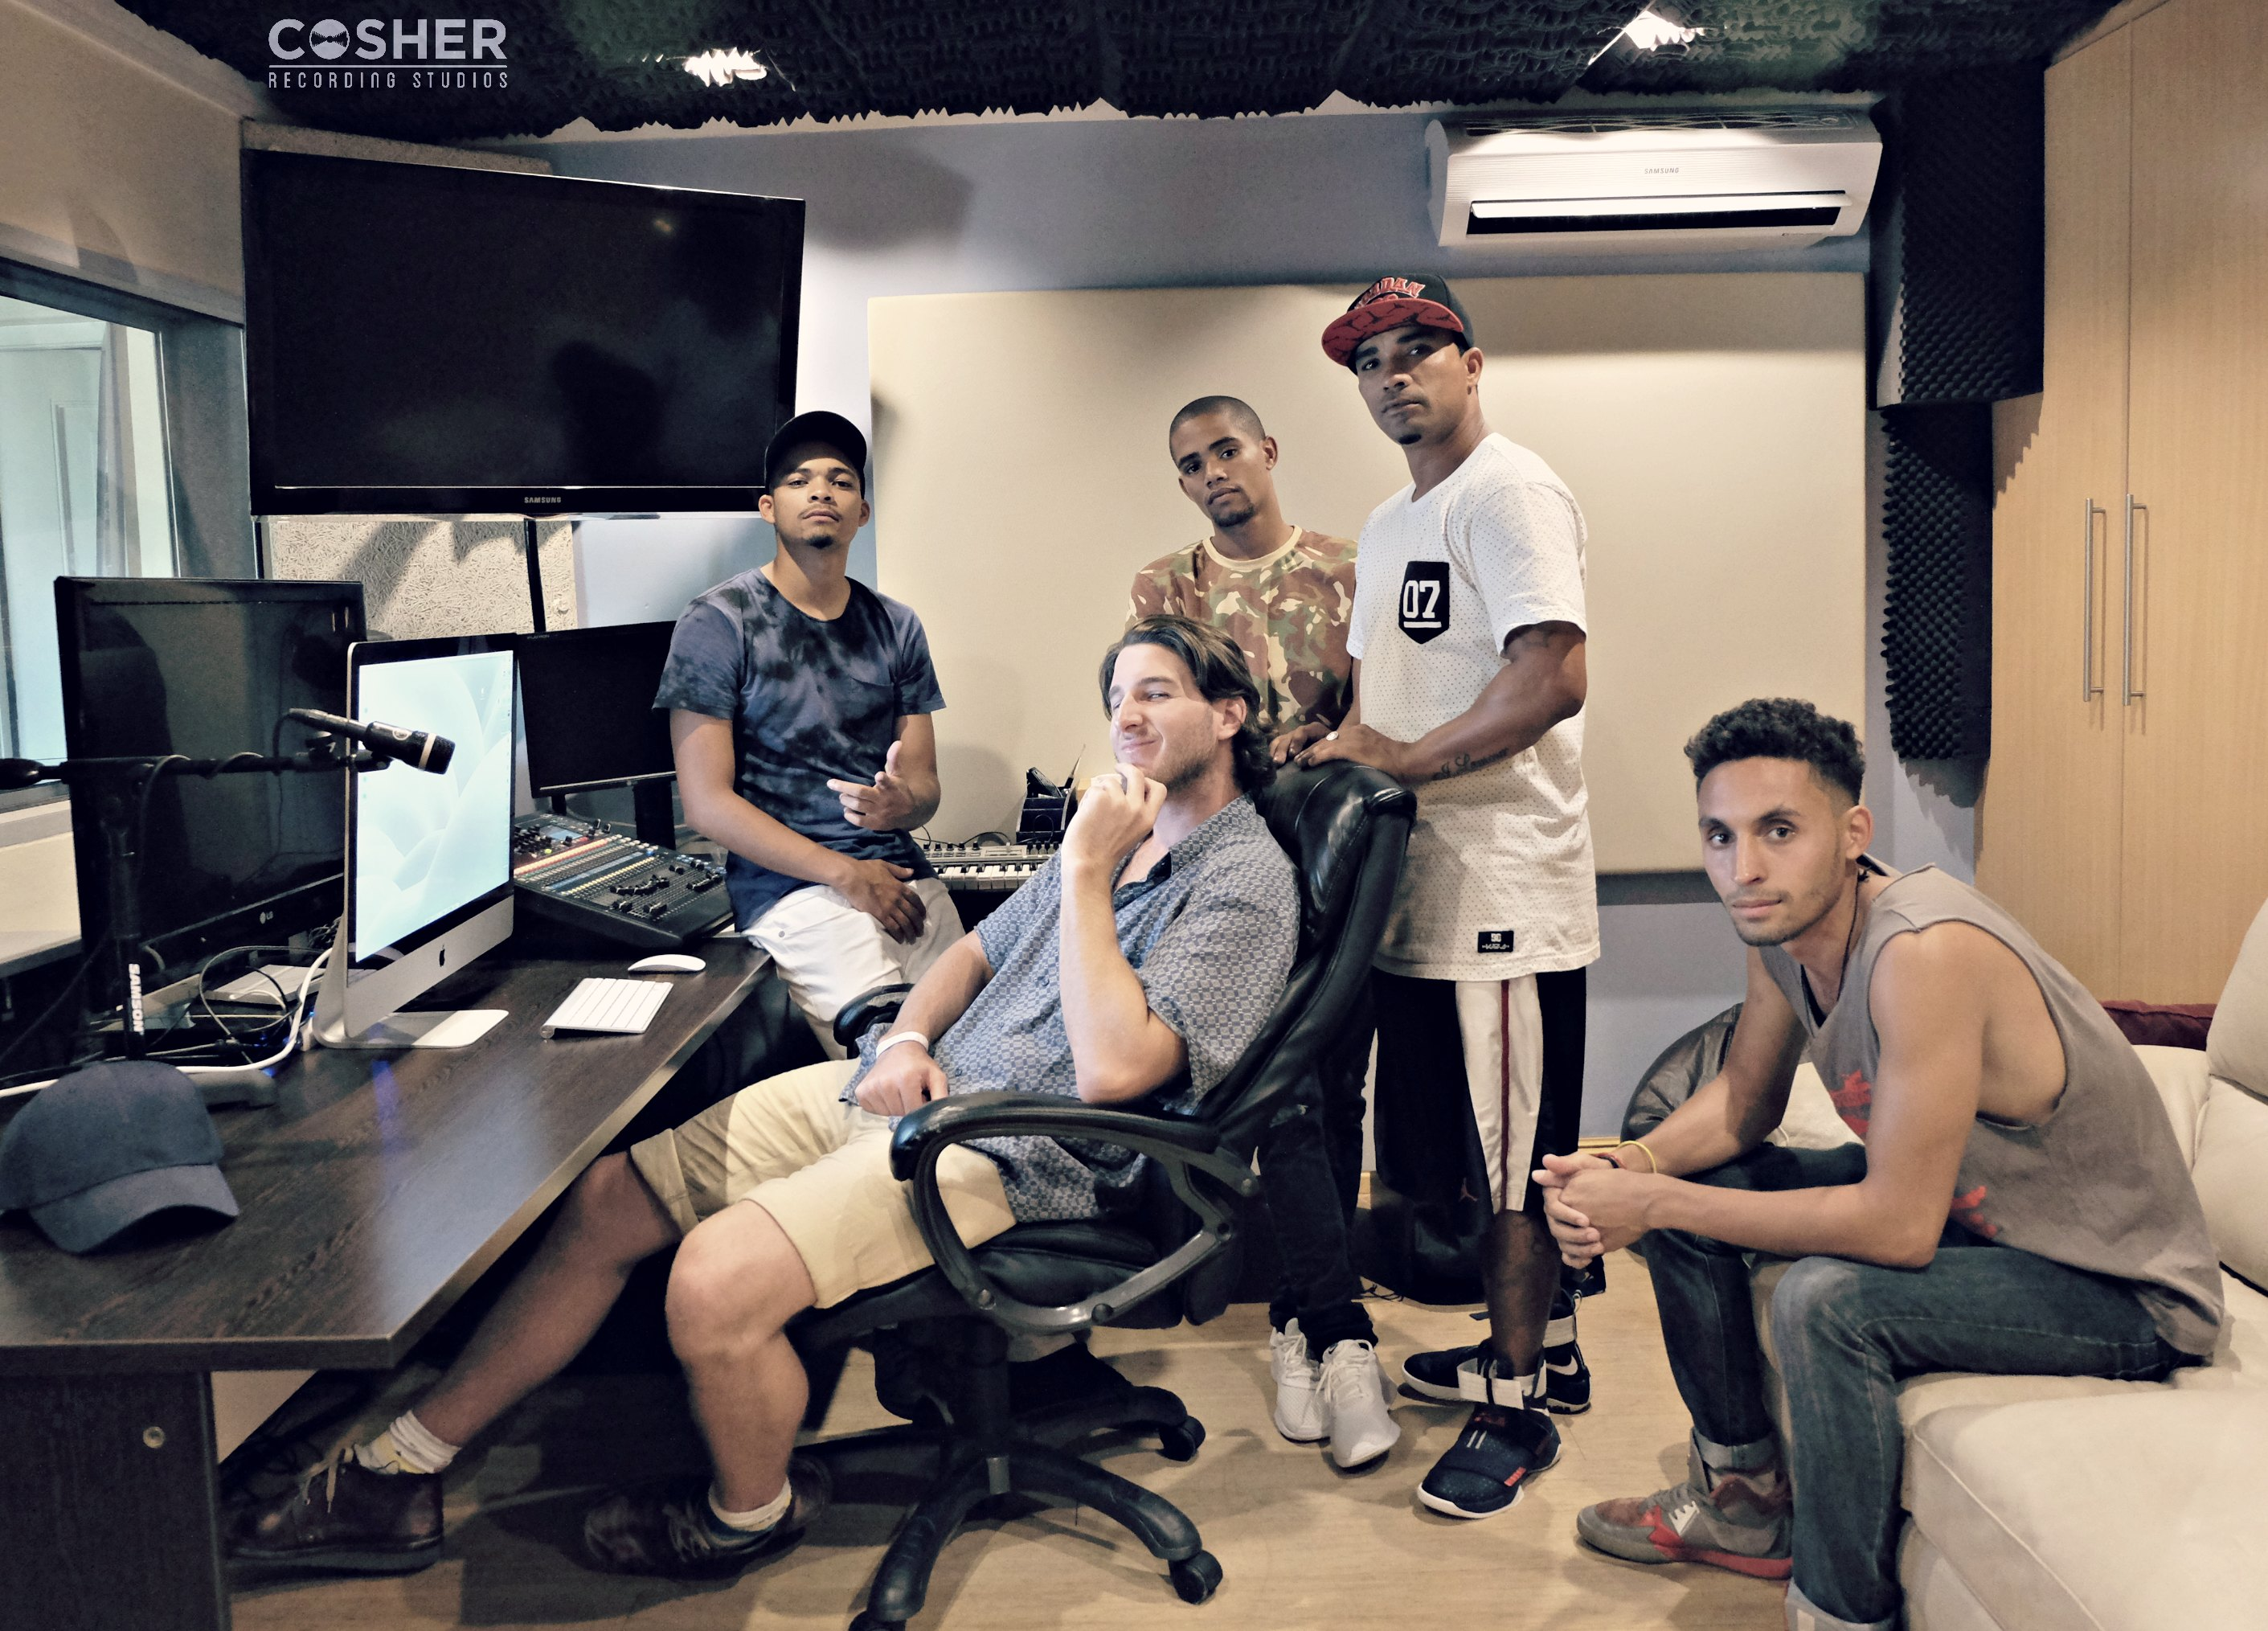 Cape Grind Records at Cosher Recording Studios